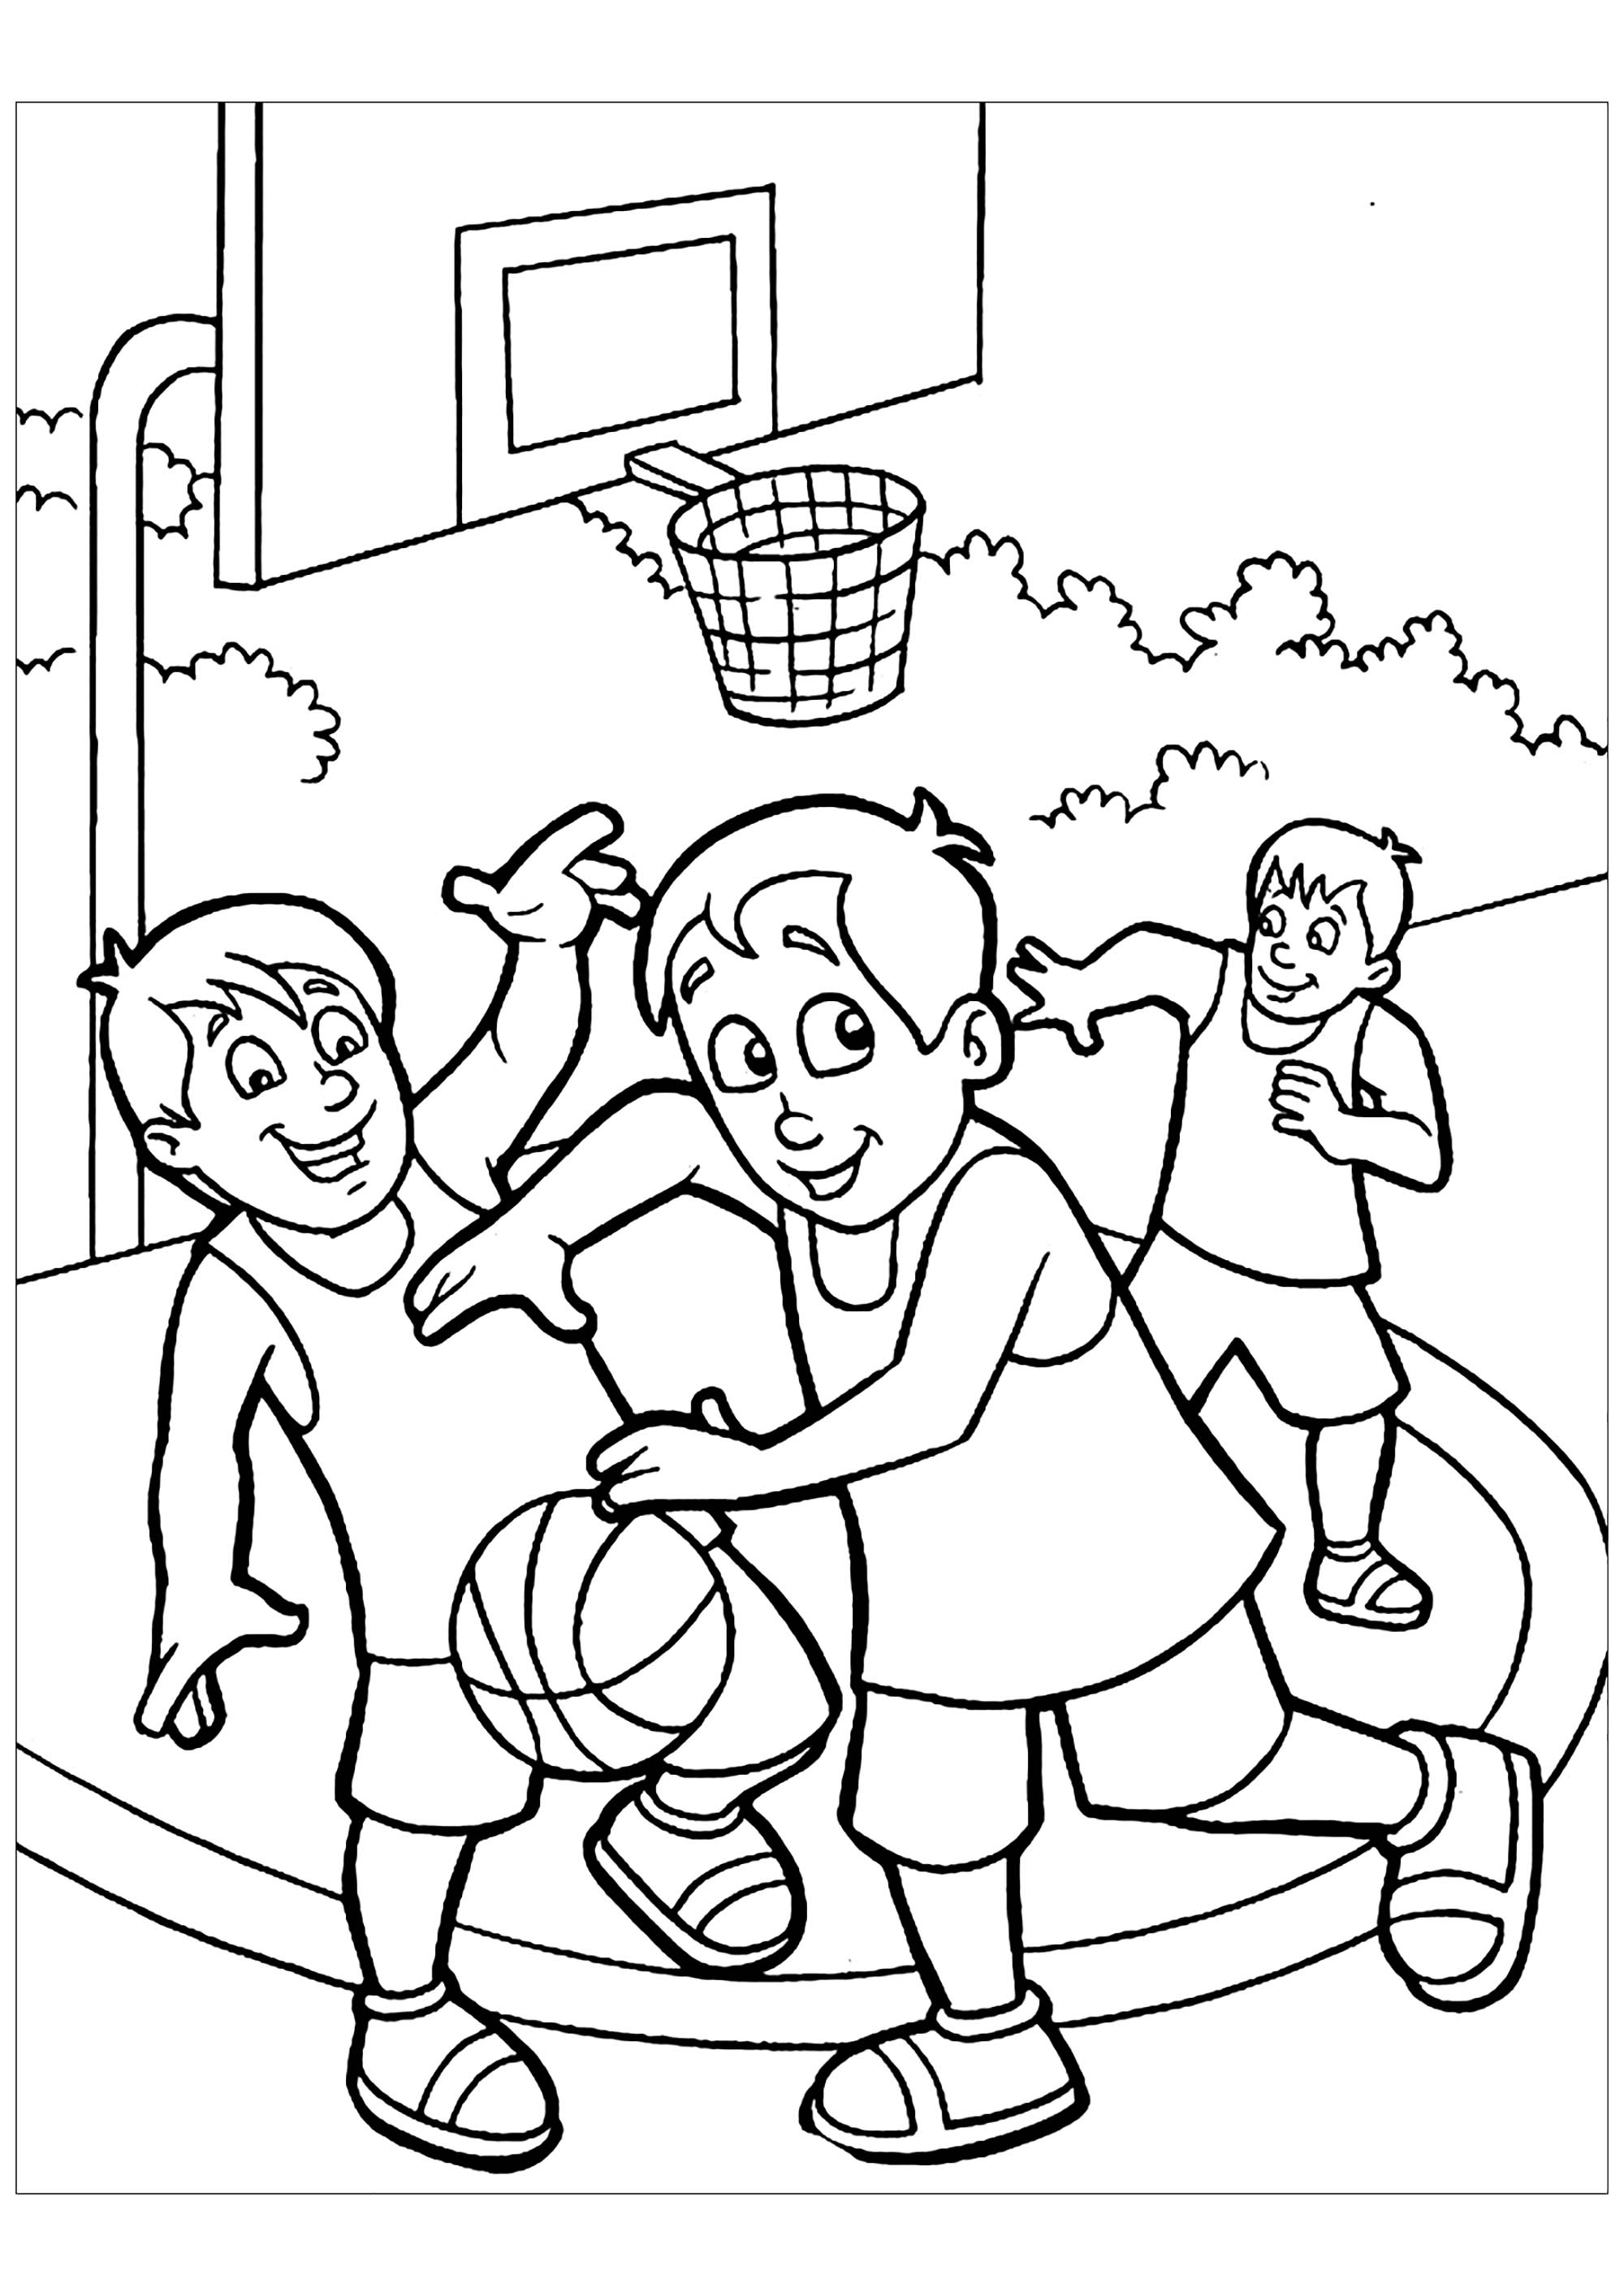 basketball coloring basketball coloring pages printable coloring home basketball coloring 1 1